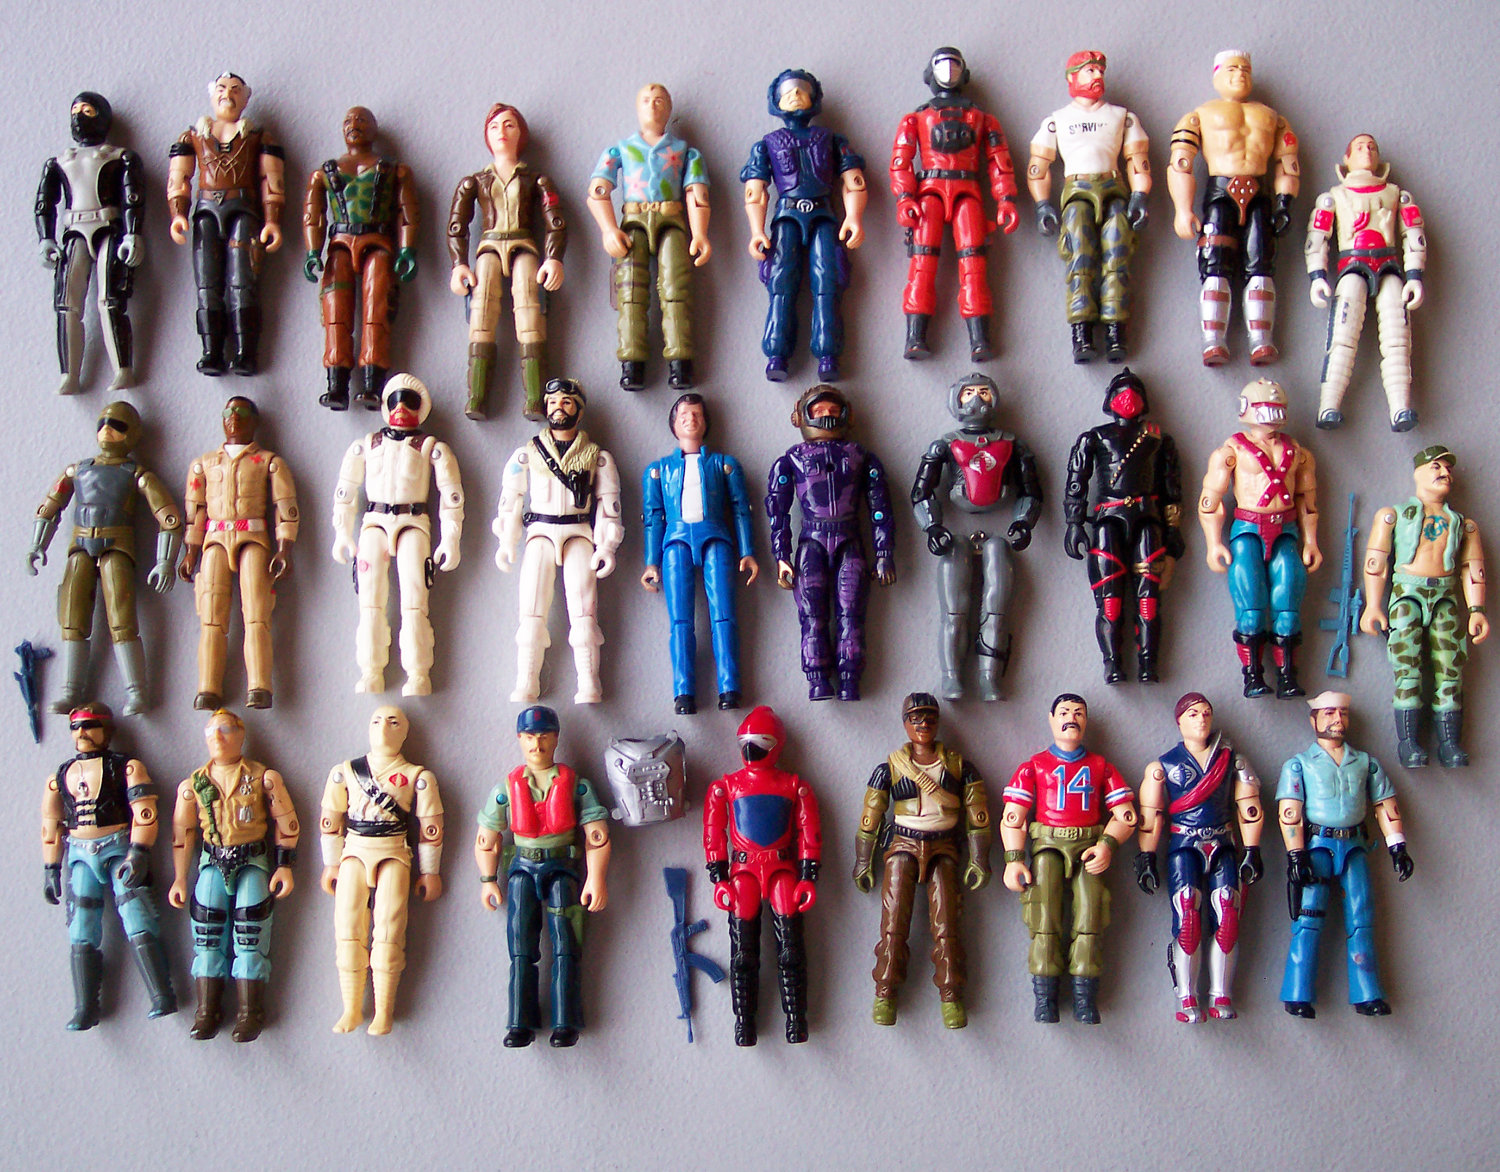 Vintage Gi Joe Action Figures